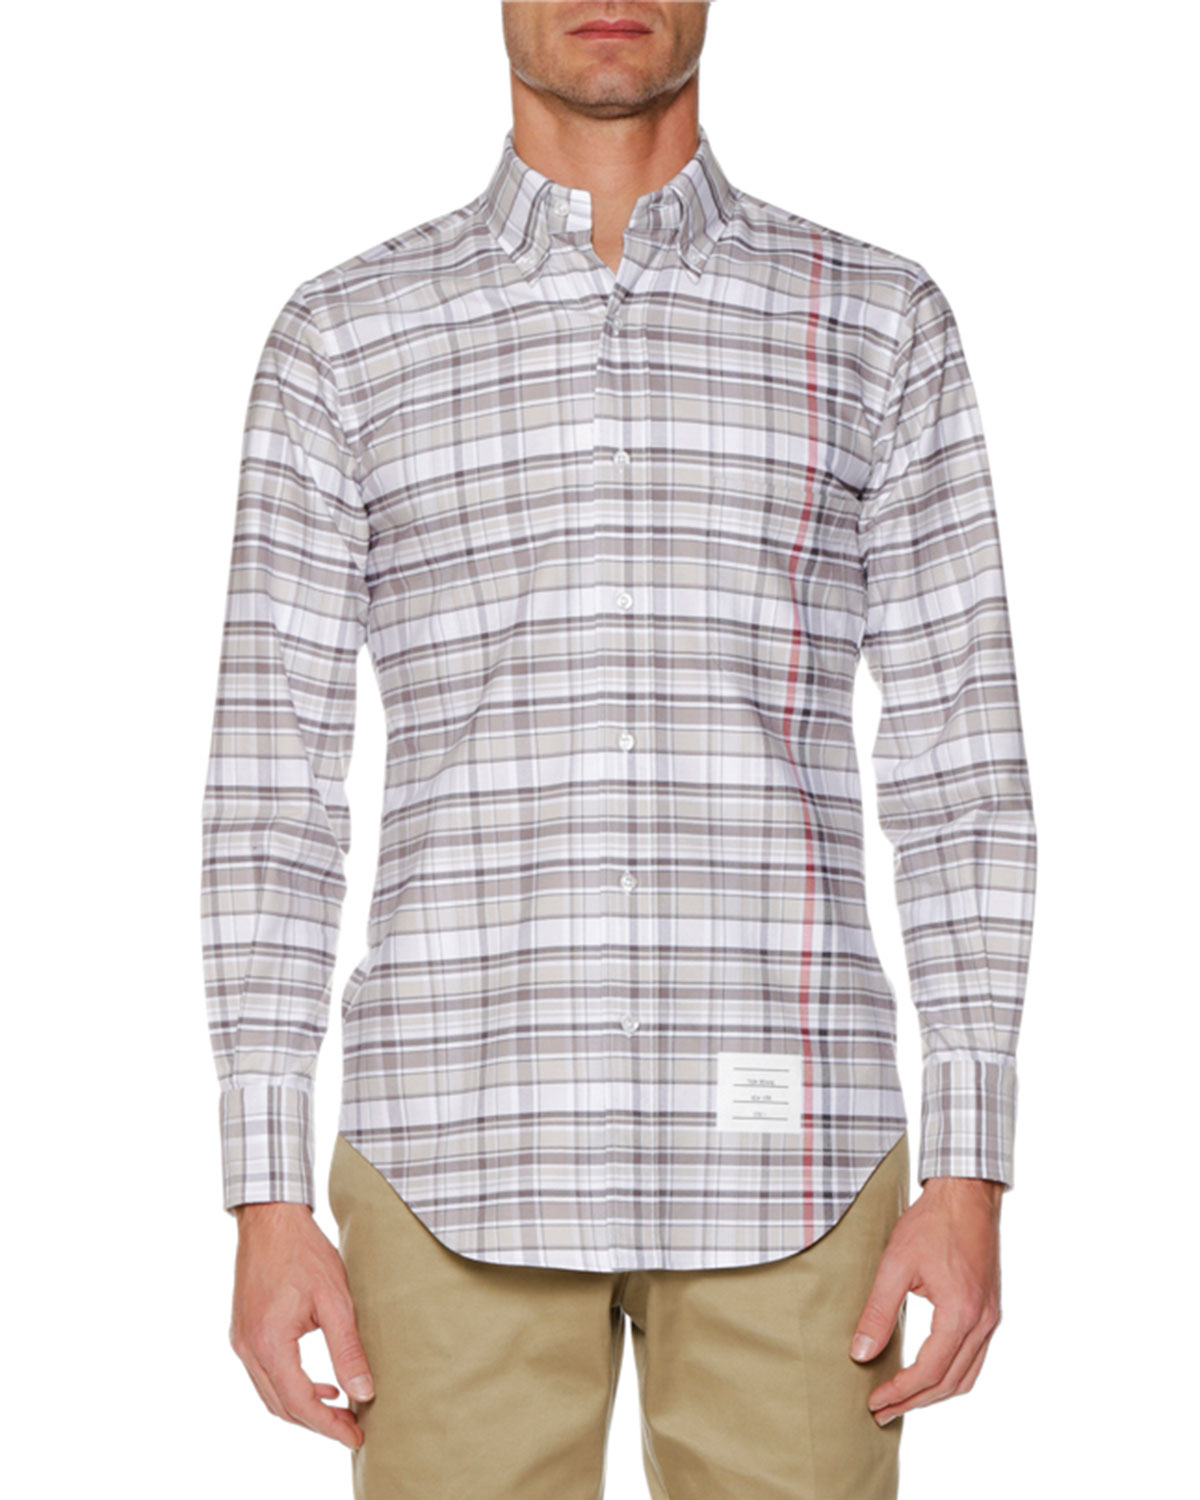 Thom Browne Men S Check Oxford Shirt Neiman Marcus